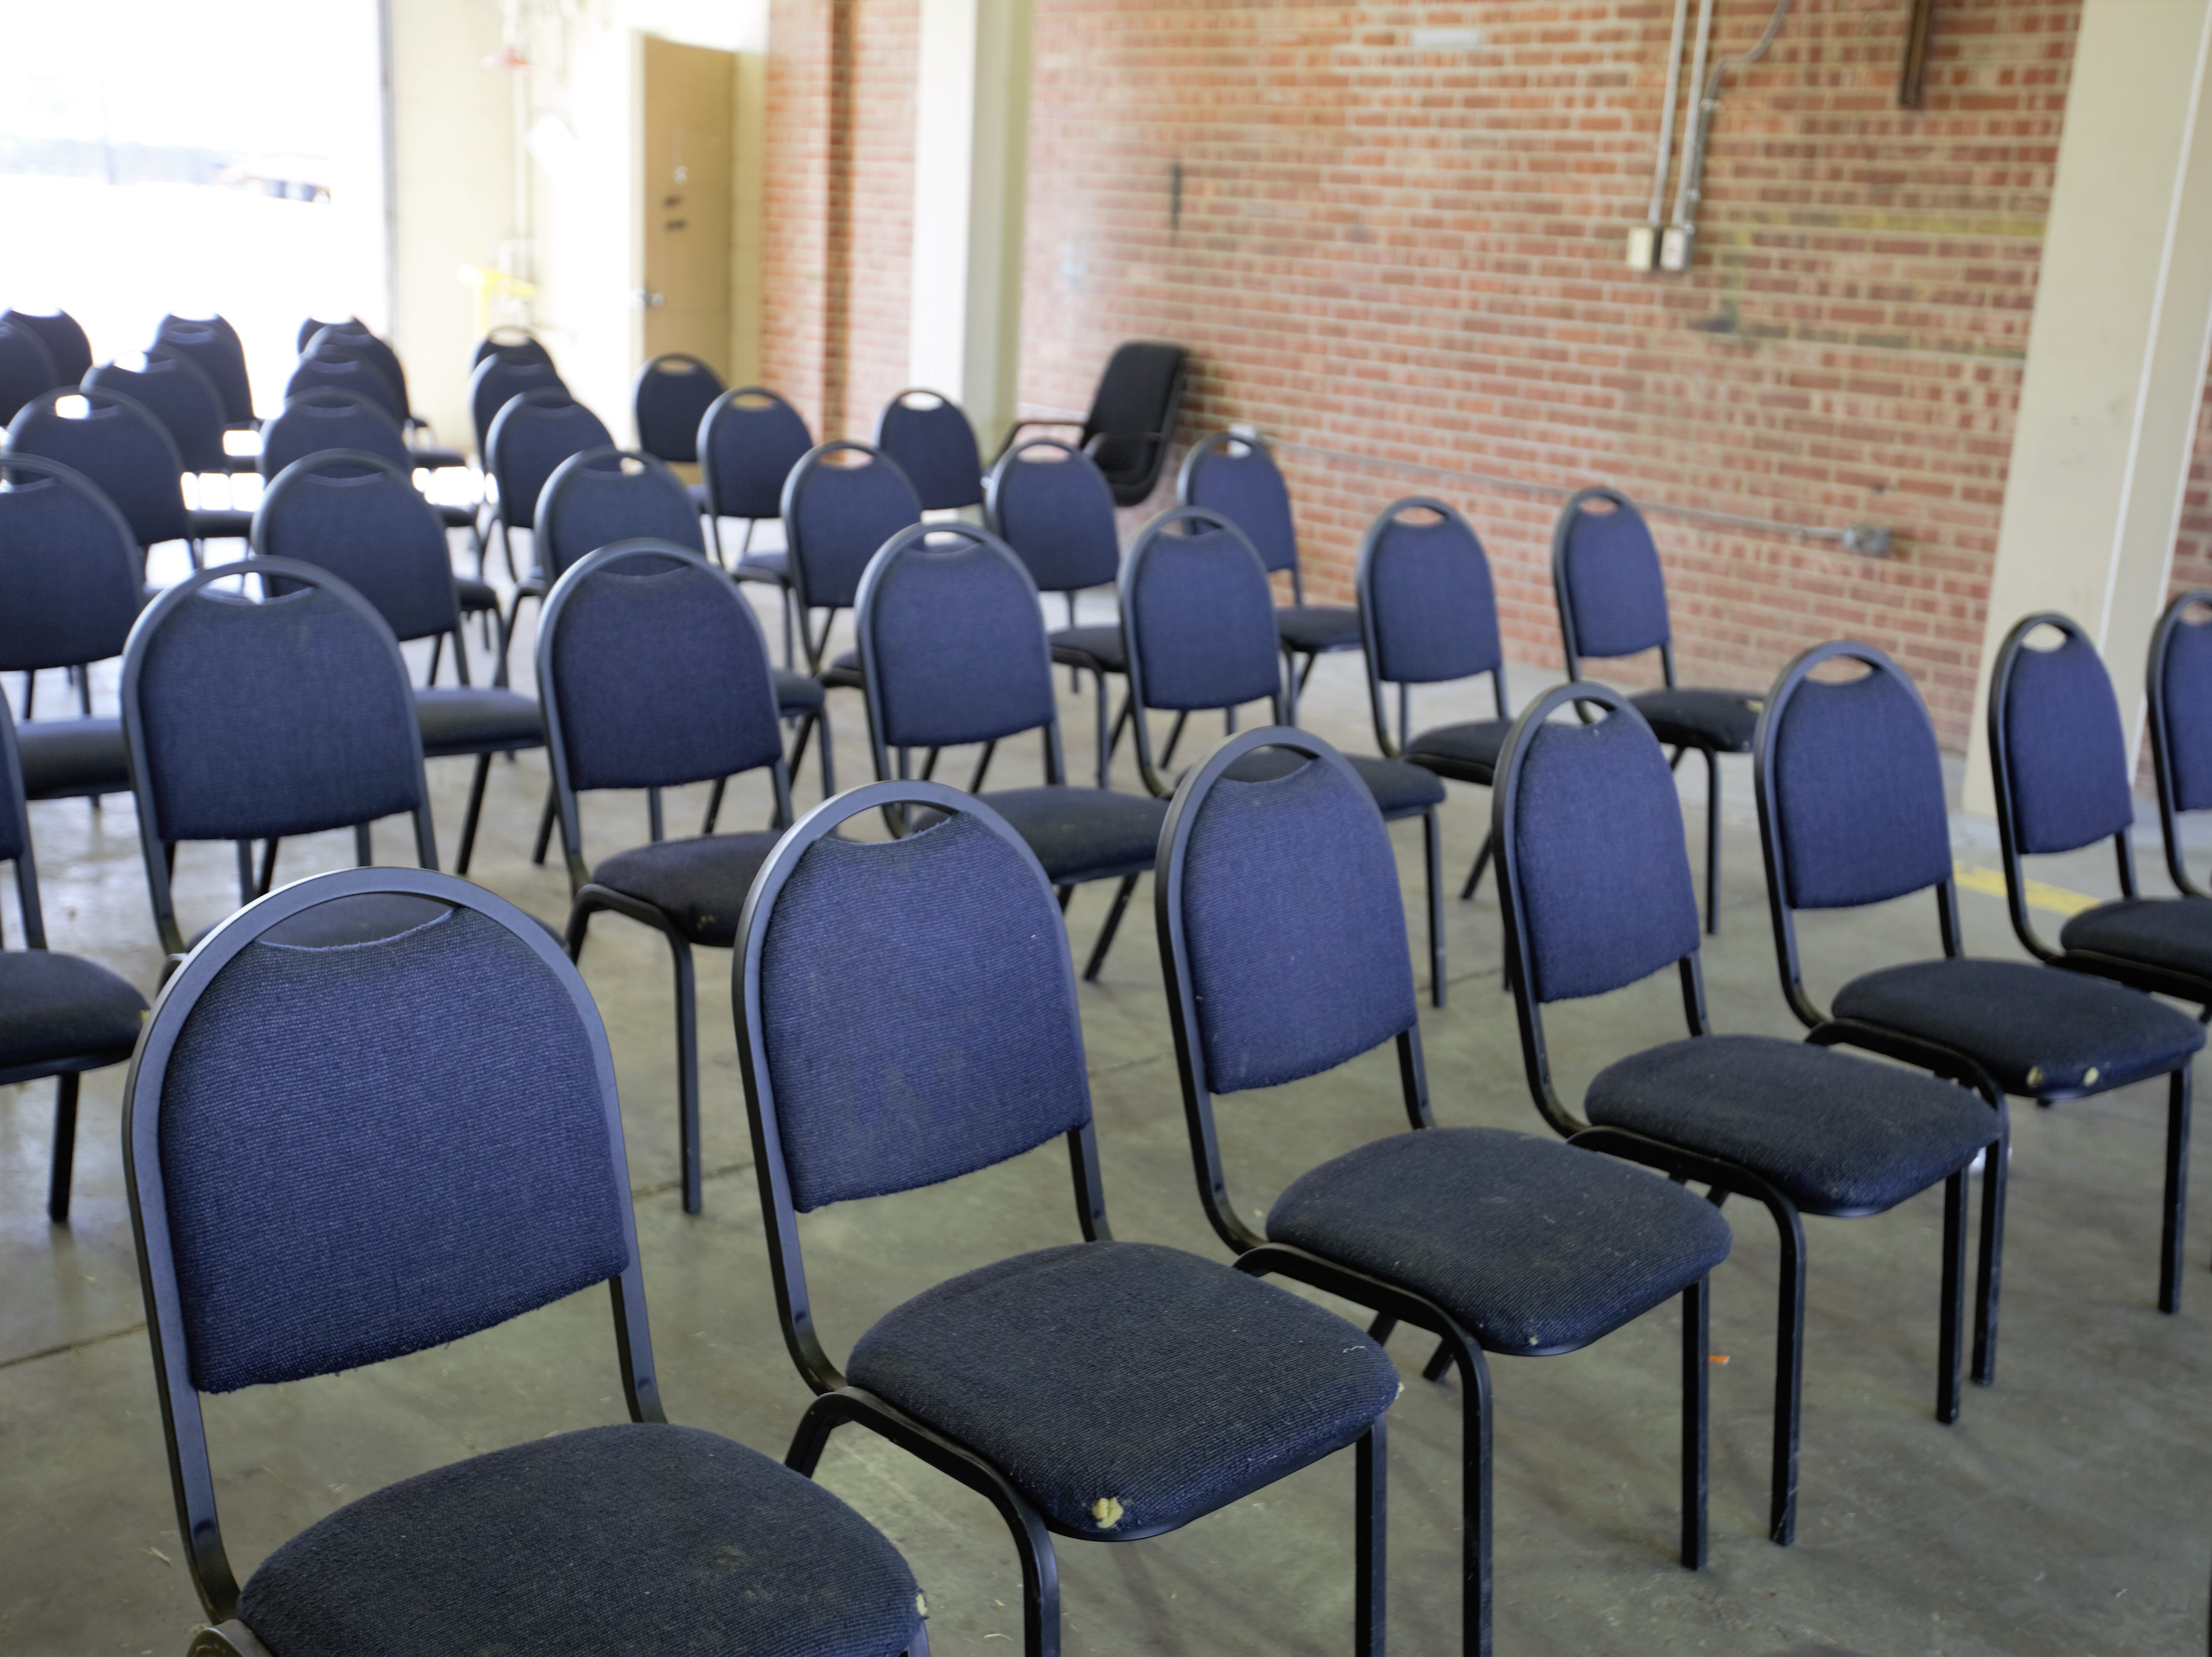 Chairs set up at the intake building for asylum applicants at the former U.S. Army Reserve Center at 1300 W. Brown Road in Las Cruces. Friday, April 26, 2019.